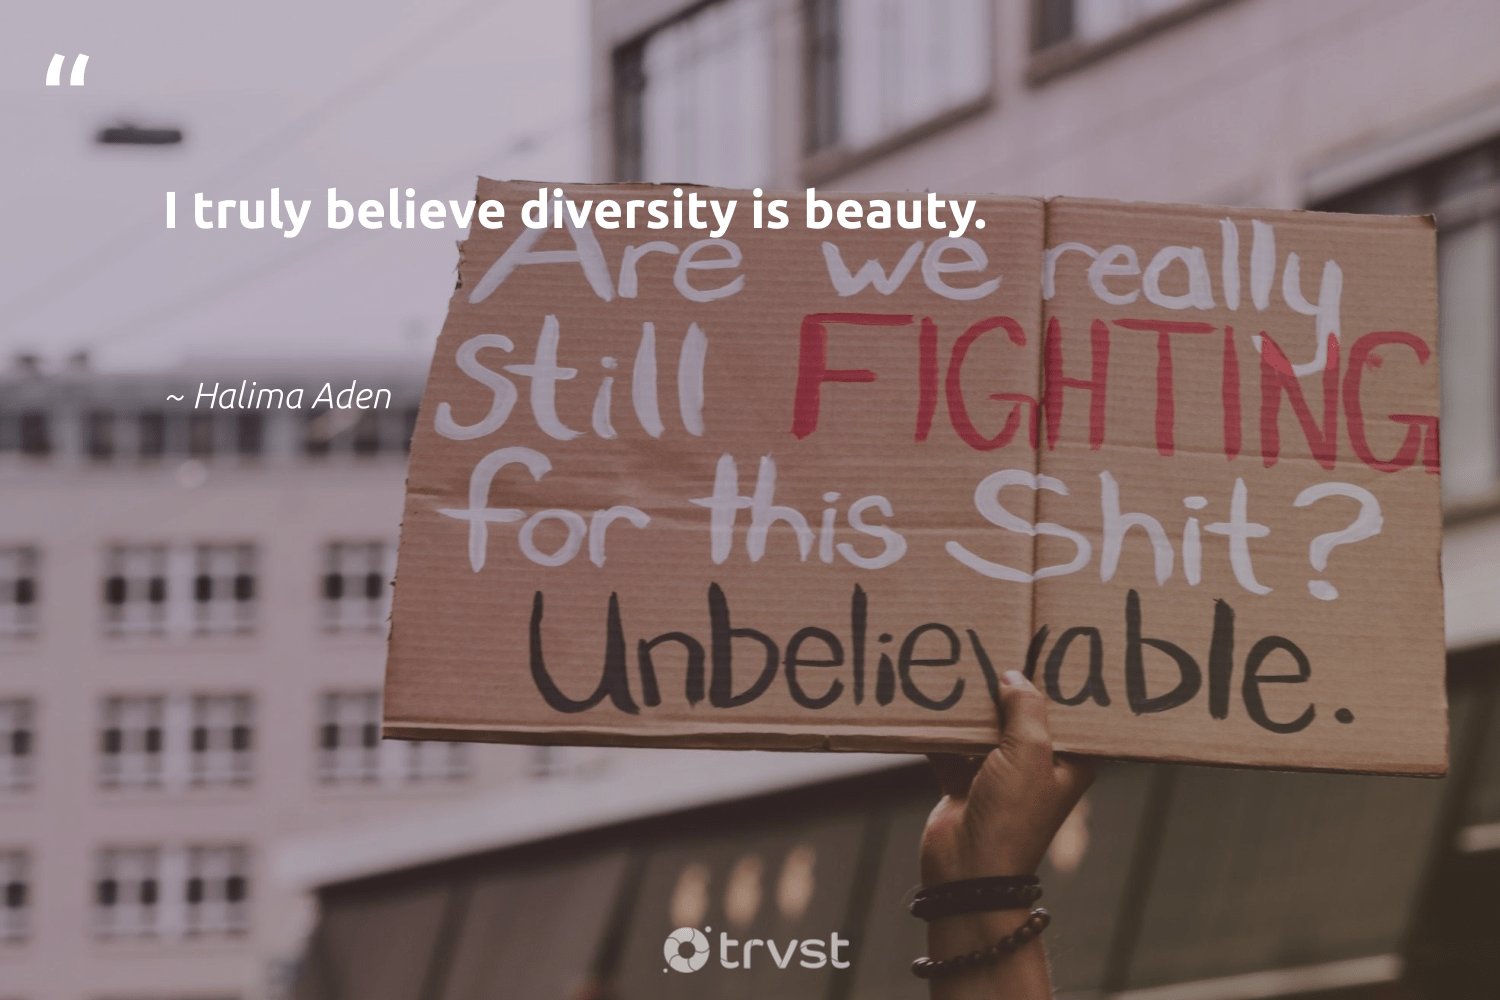 """I truly believe diversity is beauty.""  - Halima Aden #trvst #quotes #diversity #beauty #representationmatters #inclusion #weareallone #makeadifference #ecoconscious #discrimination #socialgood #socialchange"